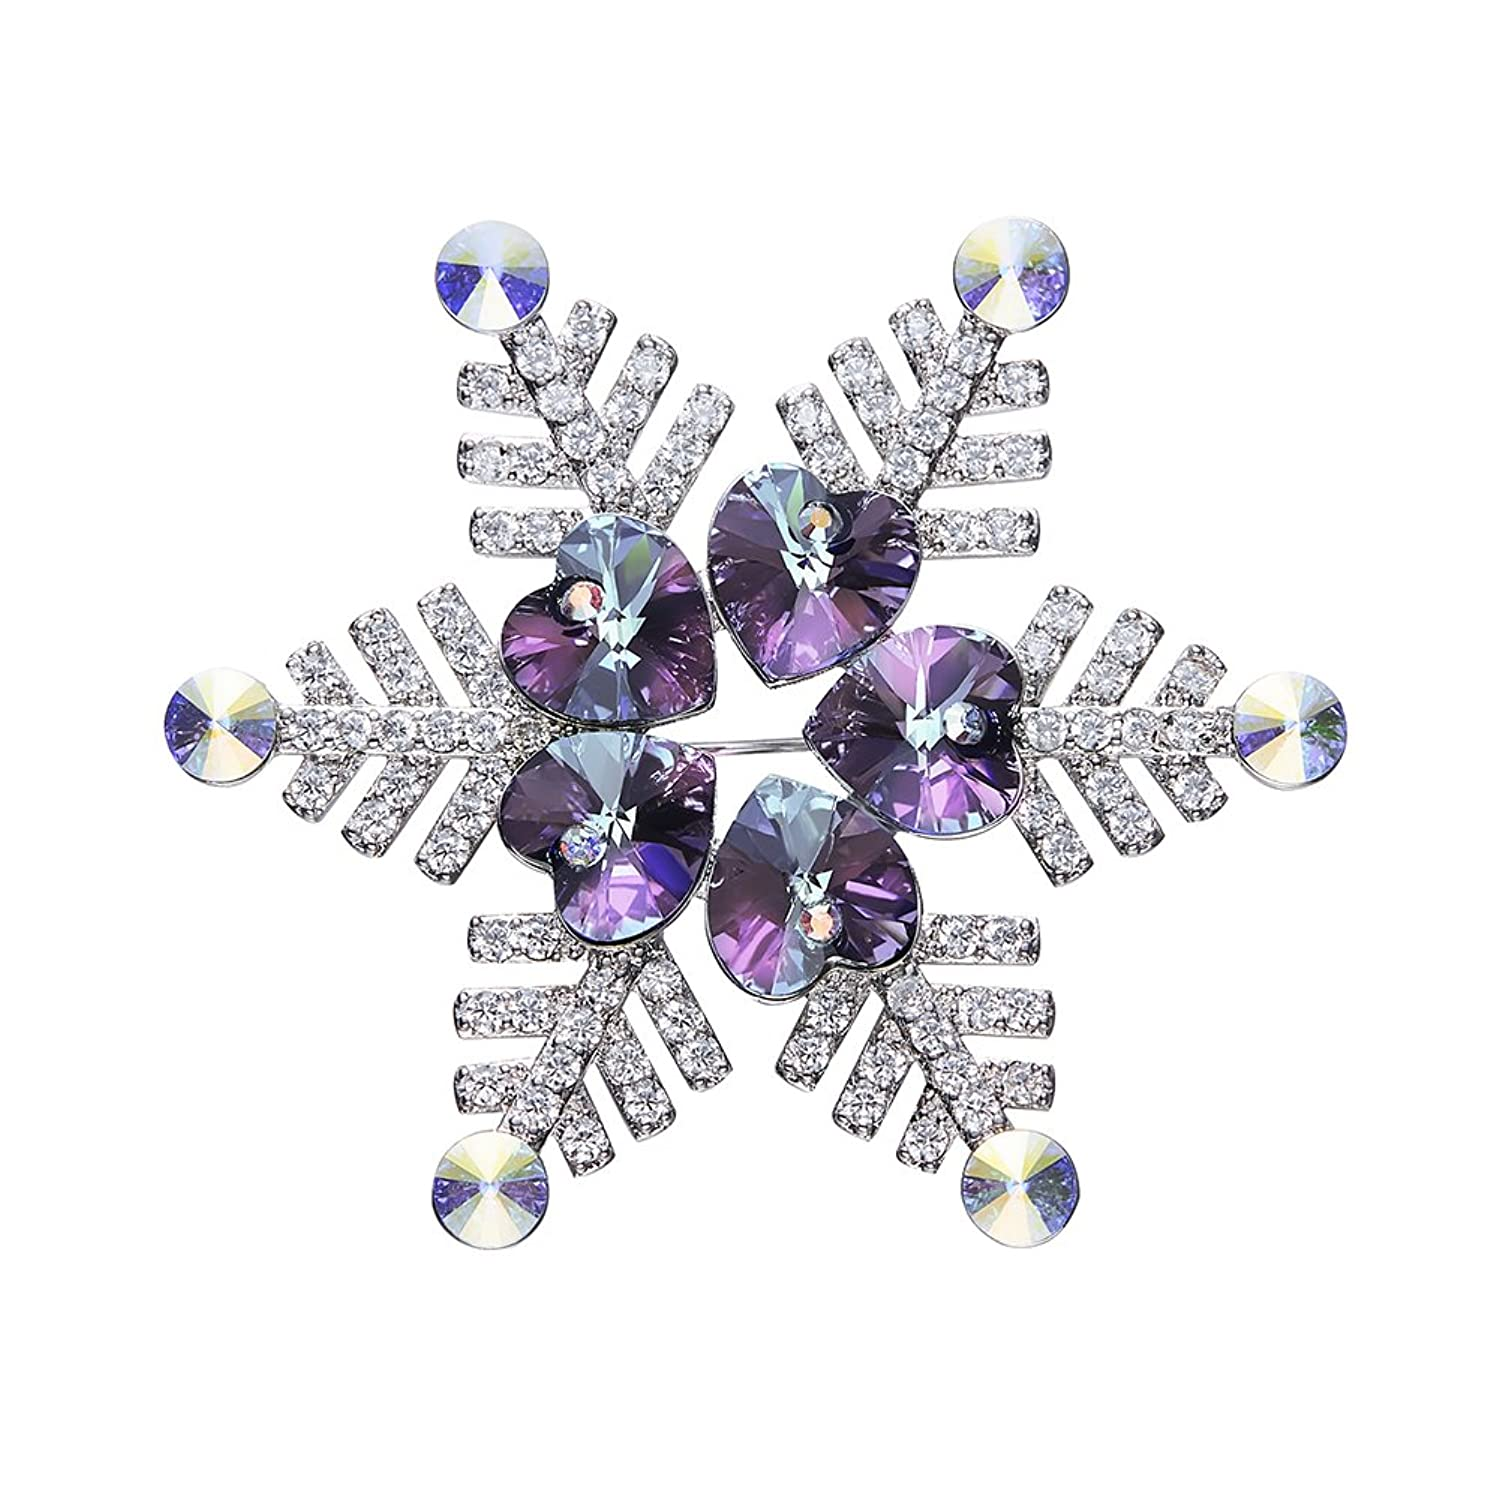 Large Snow Flower Christmas Brooches Pin For Women Made With Swarovski Element Crystals